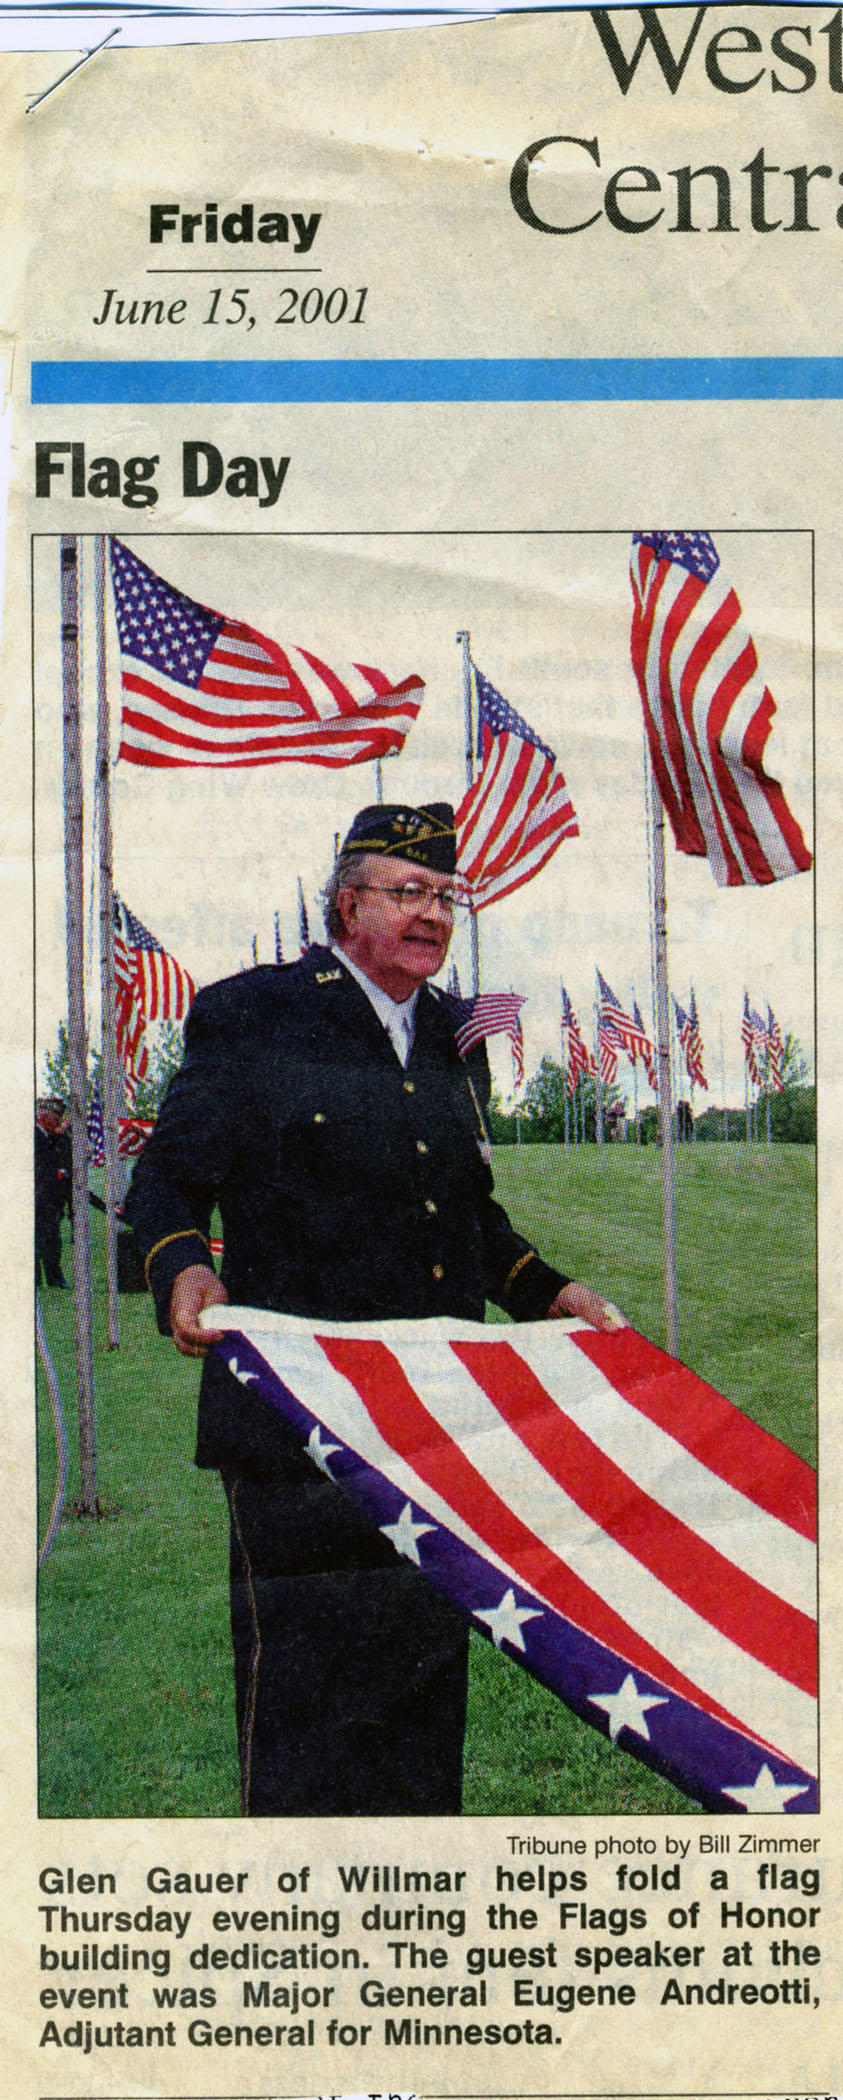 Glen Gauer with flag